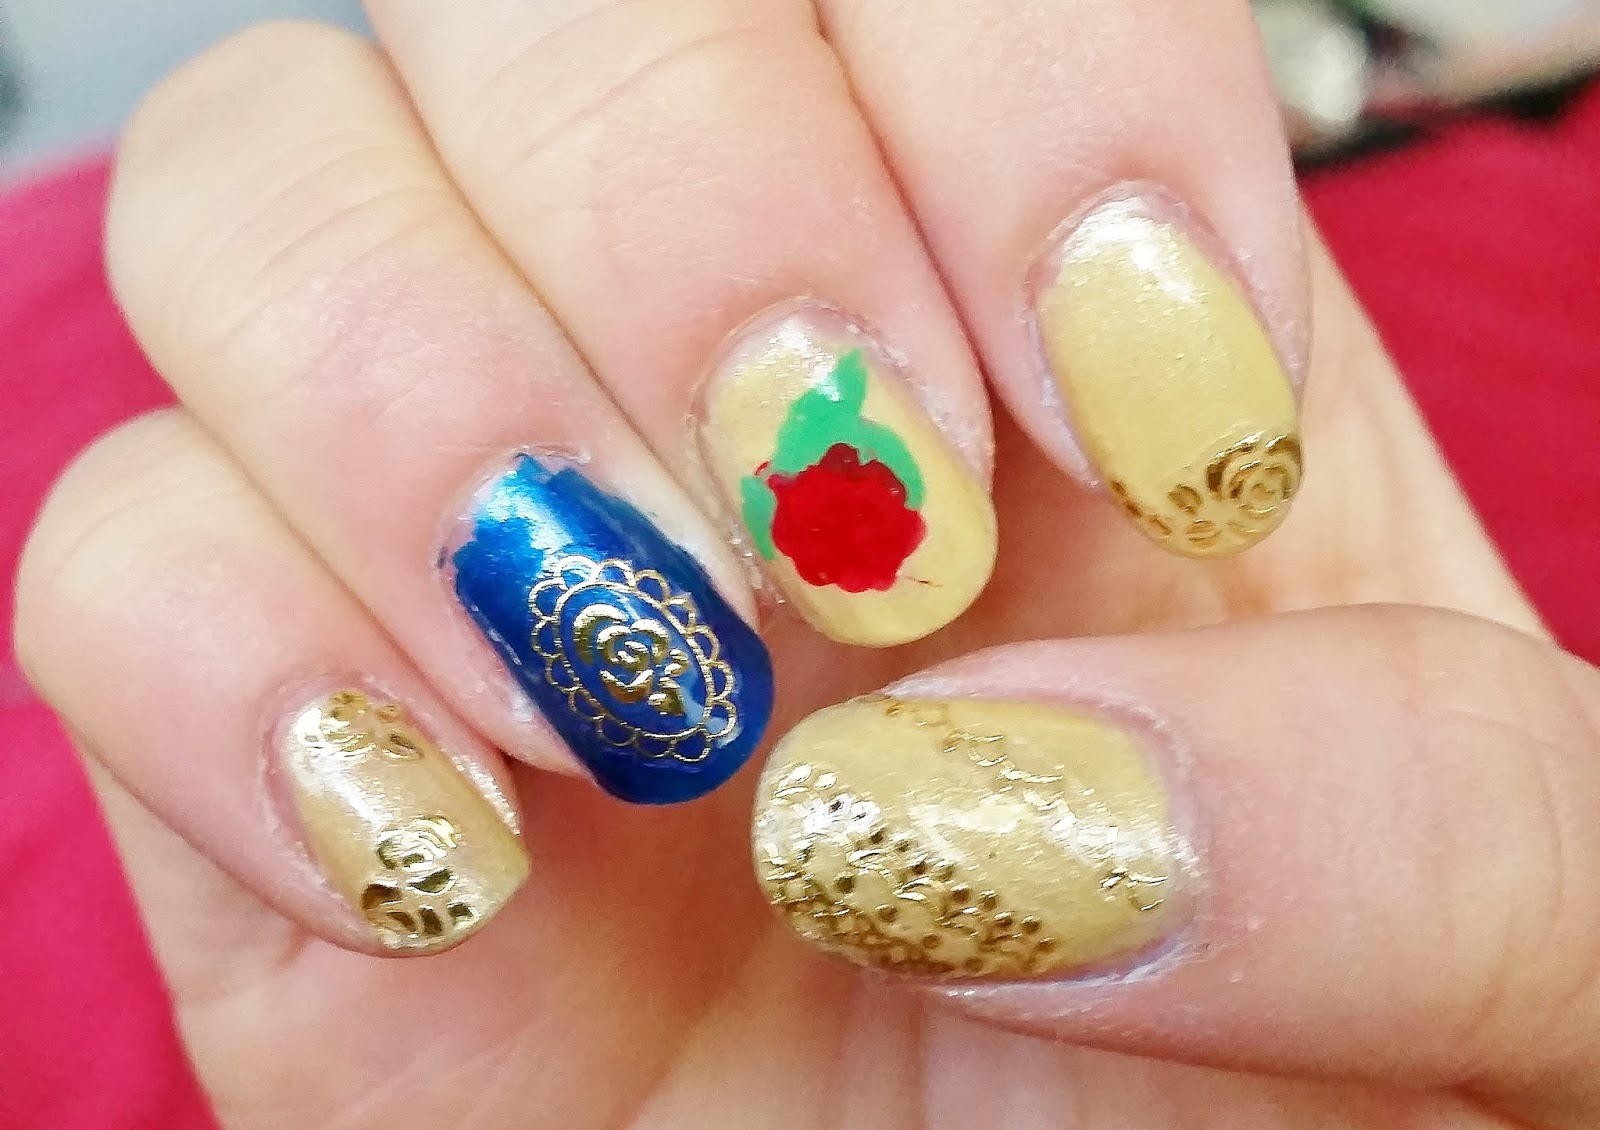 Beauty In Everyday Life Disney Princess Series Nail Art Beauty And